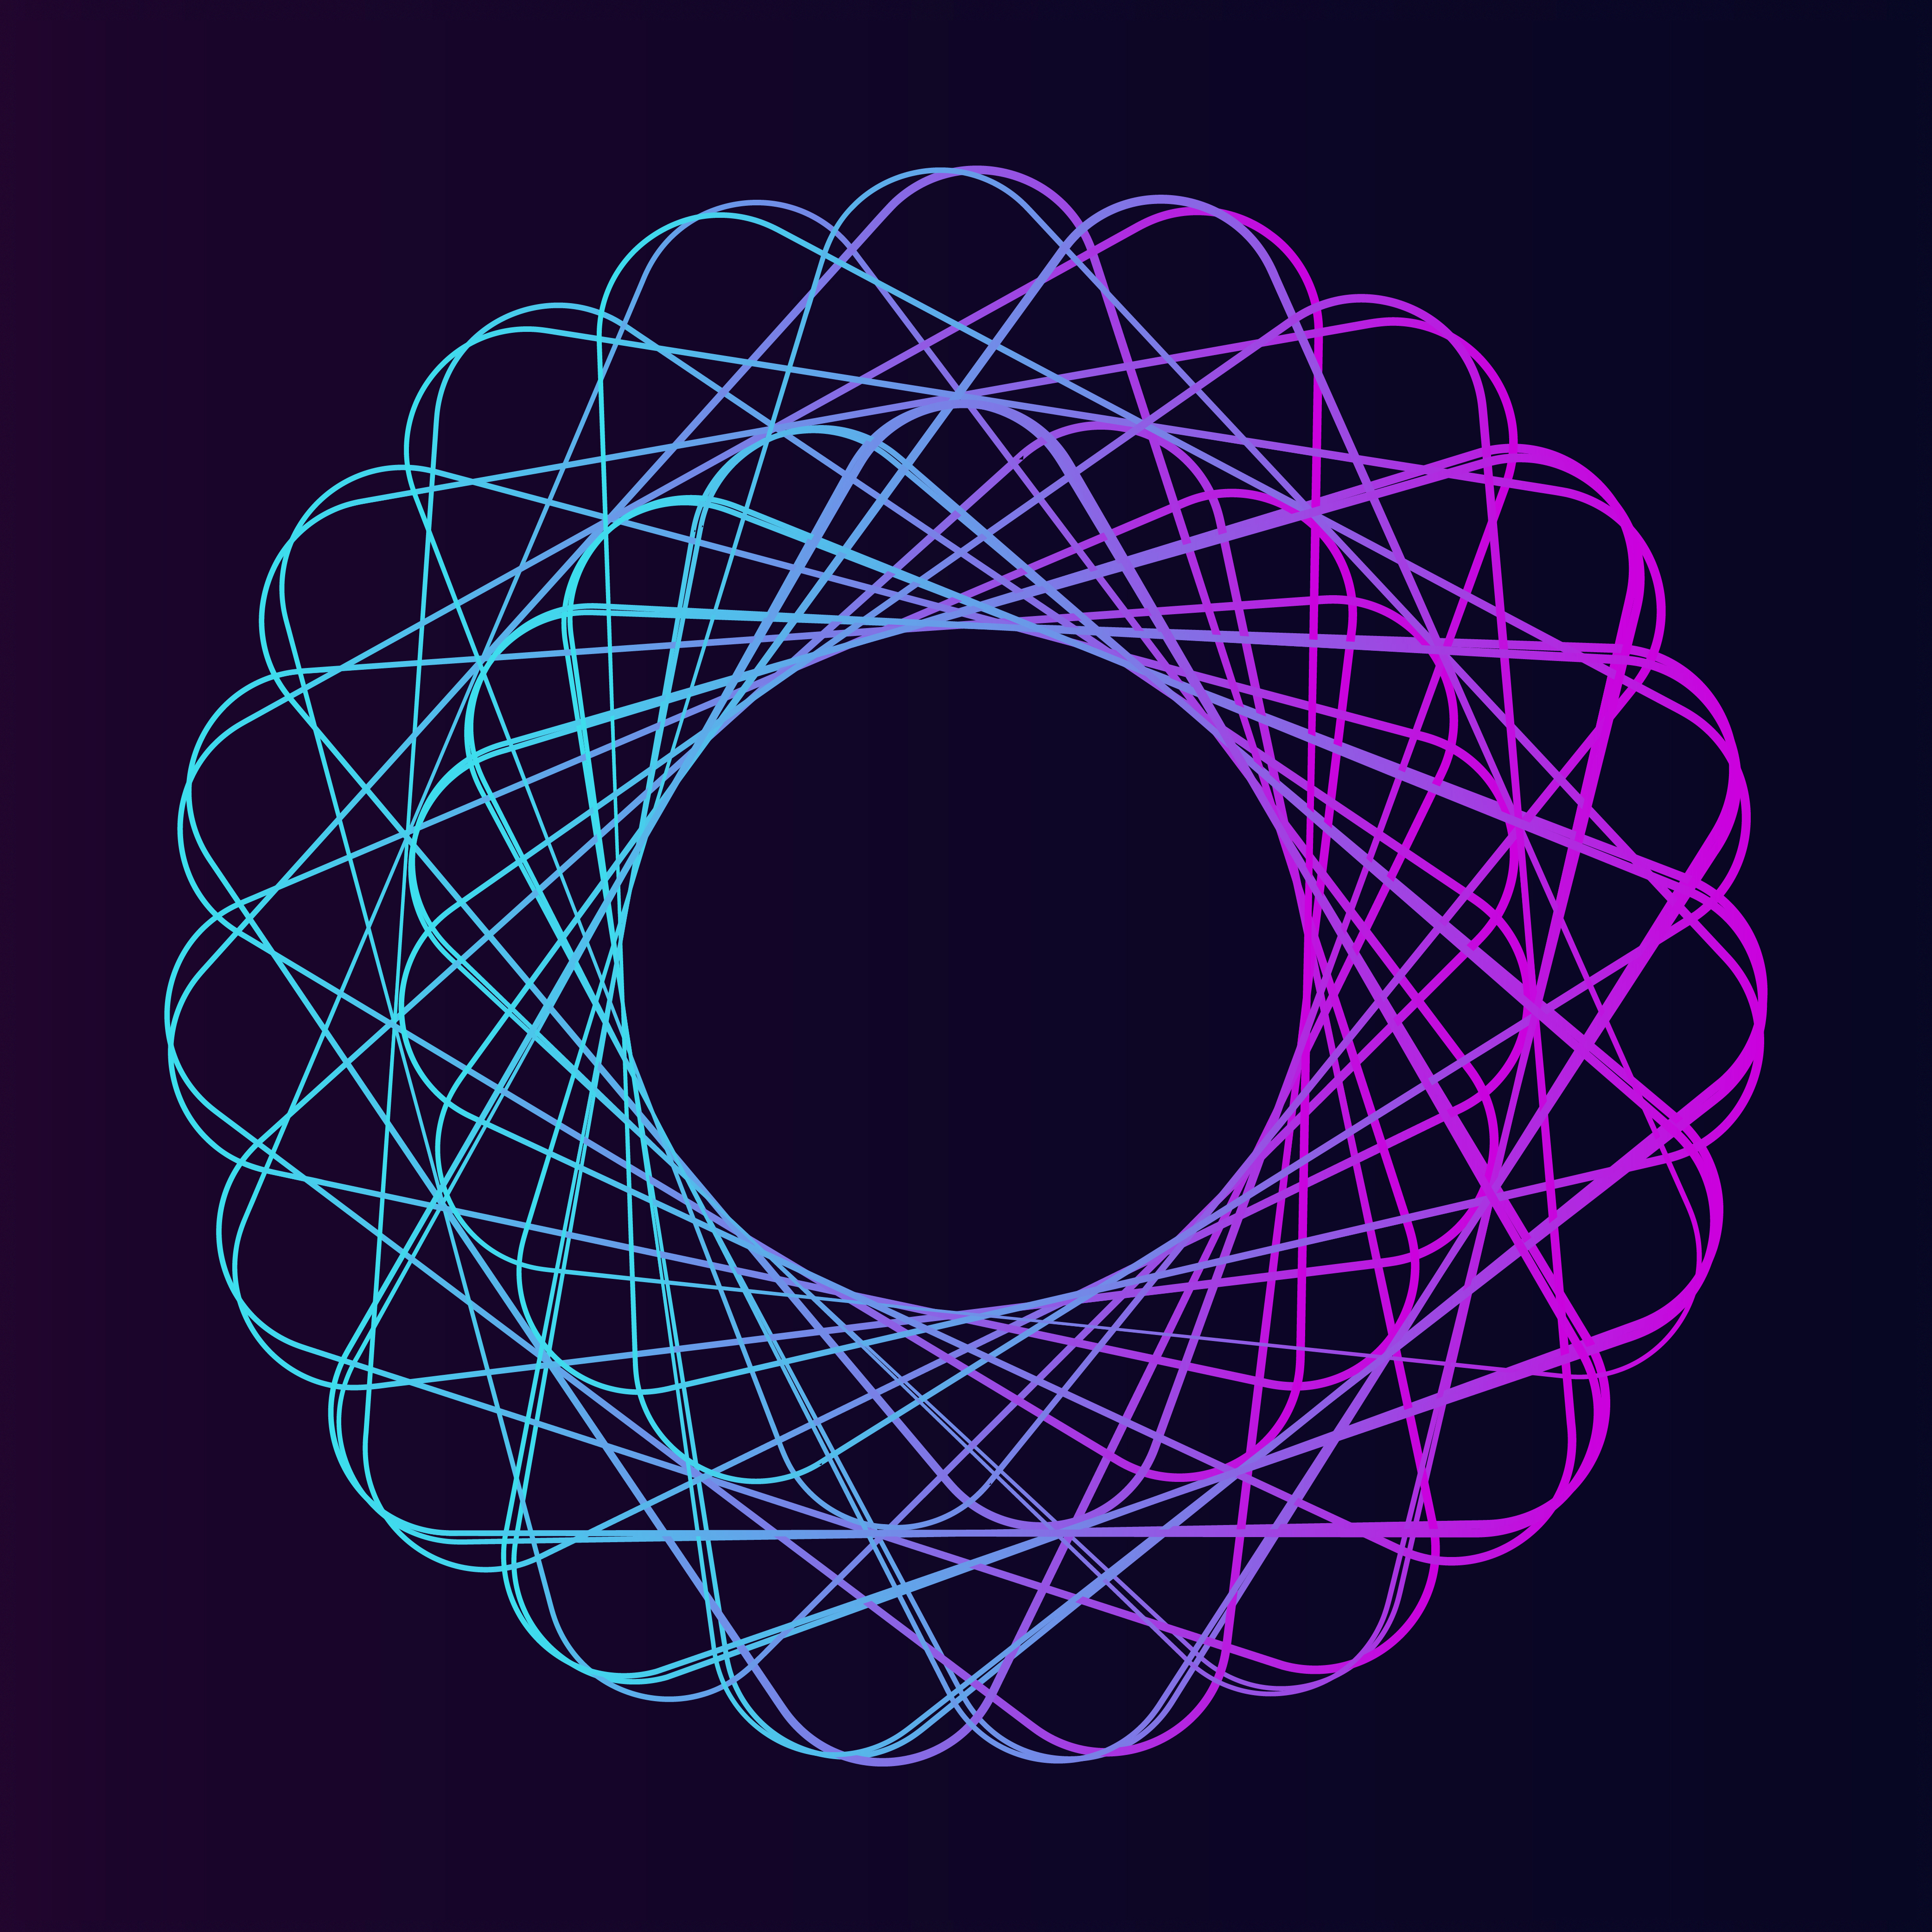 Abstract circular geometric element vector - Download Free ...